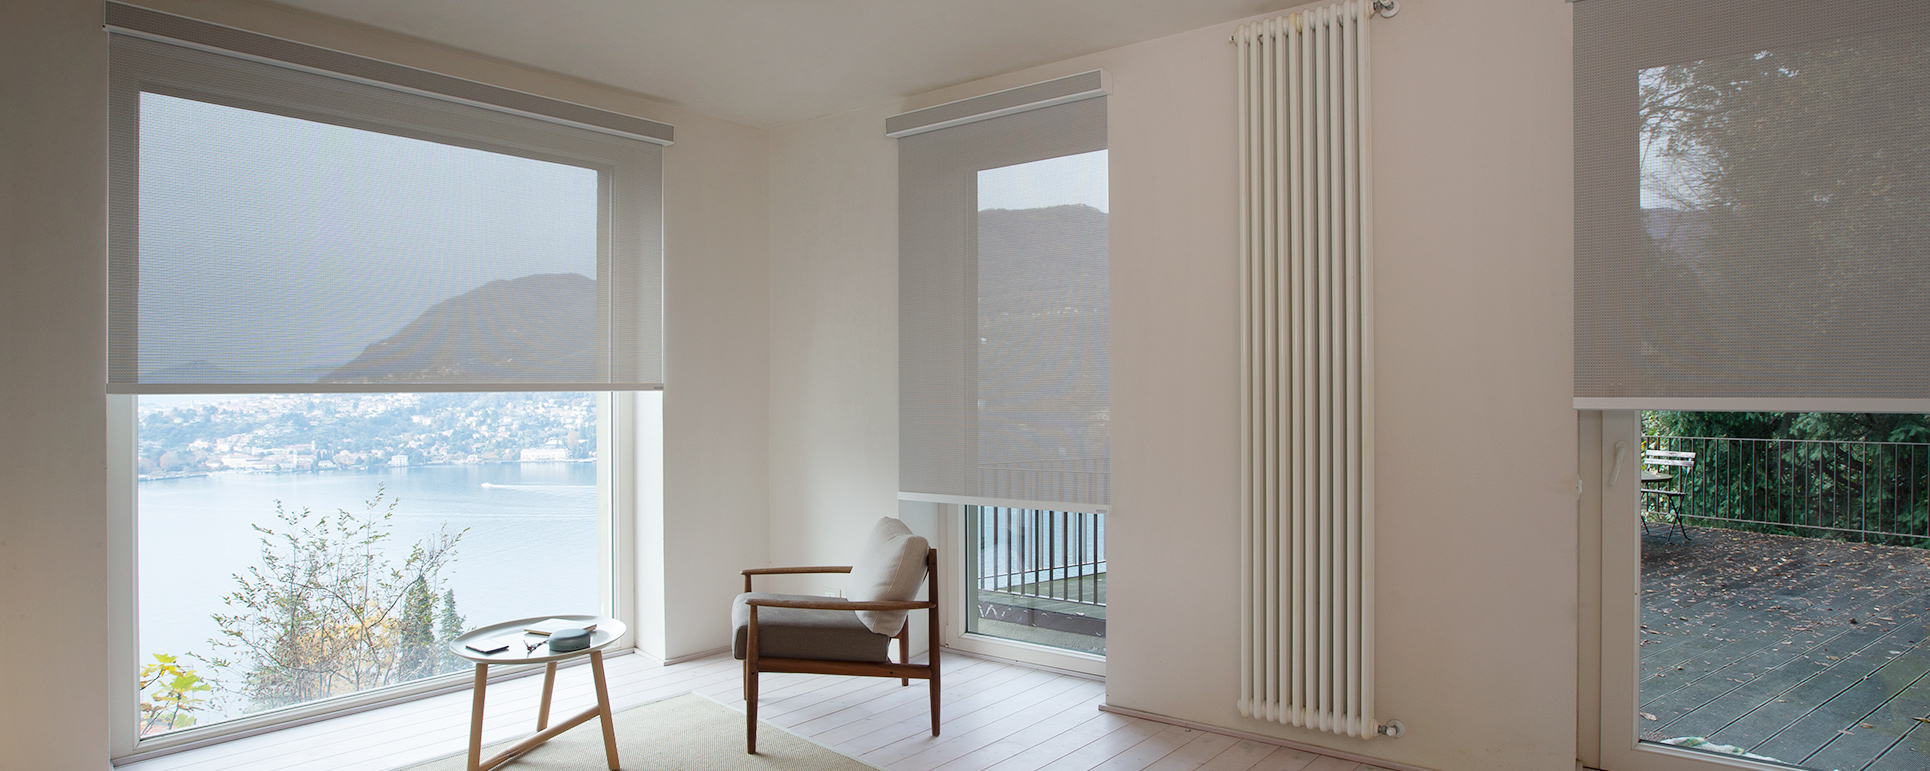 Bandalux cortinas con frontal decorativo